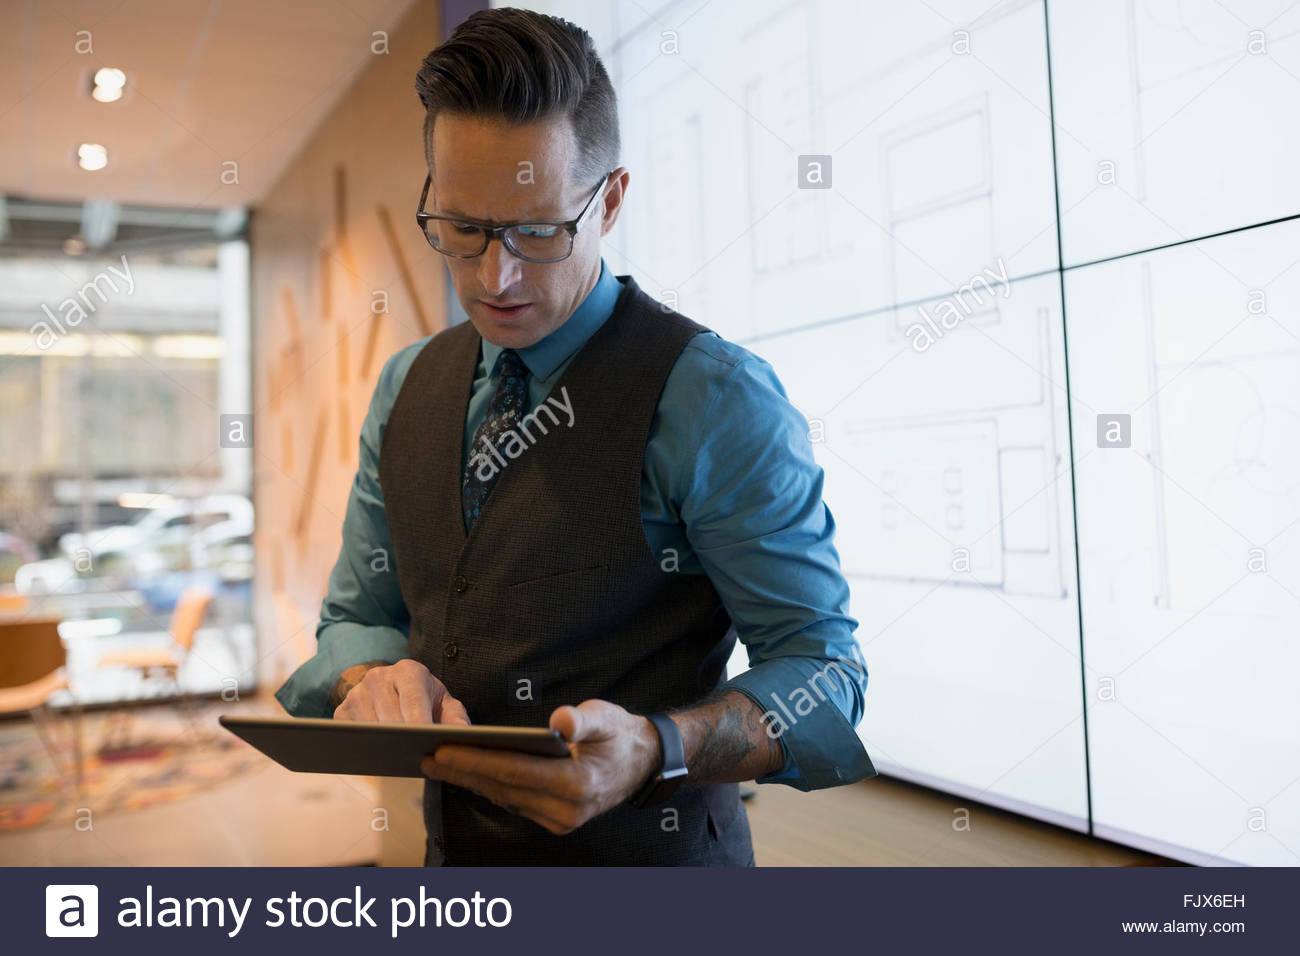 Architect using digital tablet at projection screen - Stock Image